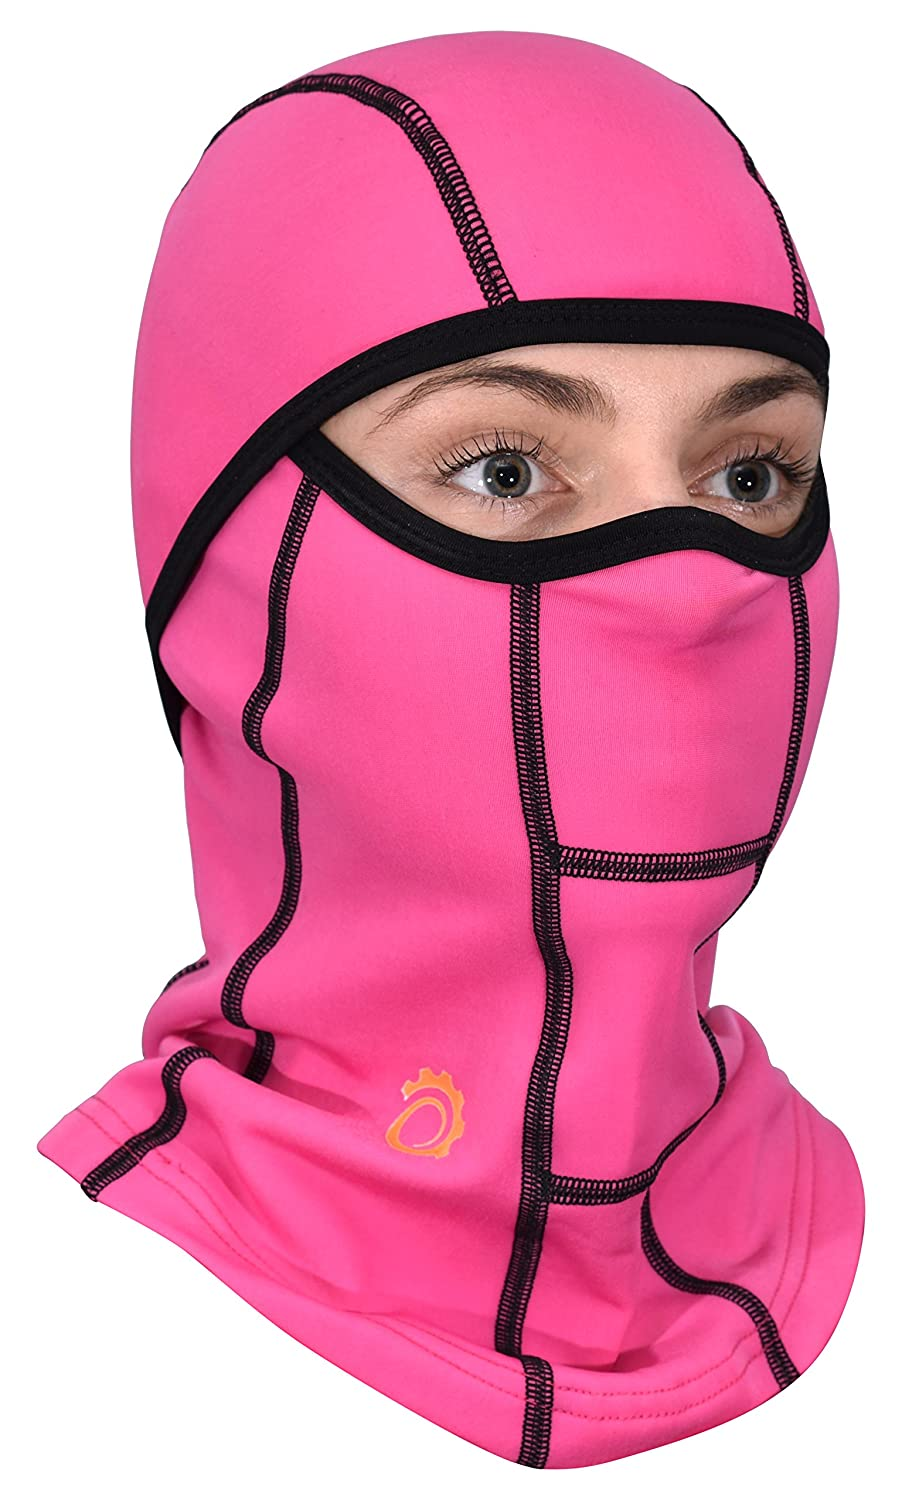 GearTOP Balaclava, Best Full Face Mask, Premium Ski Mask and Neck Warmer for Motorcycle and Cycling 14-0101BAL